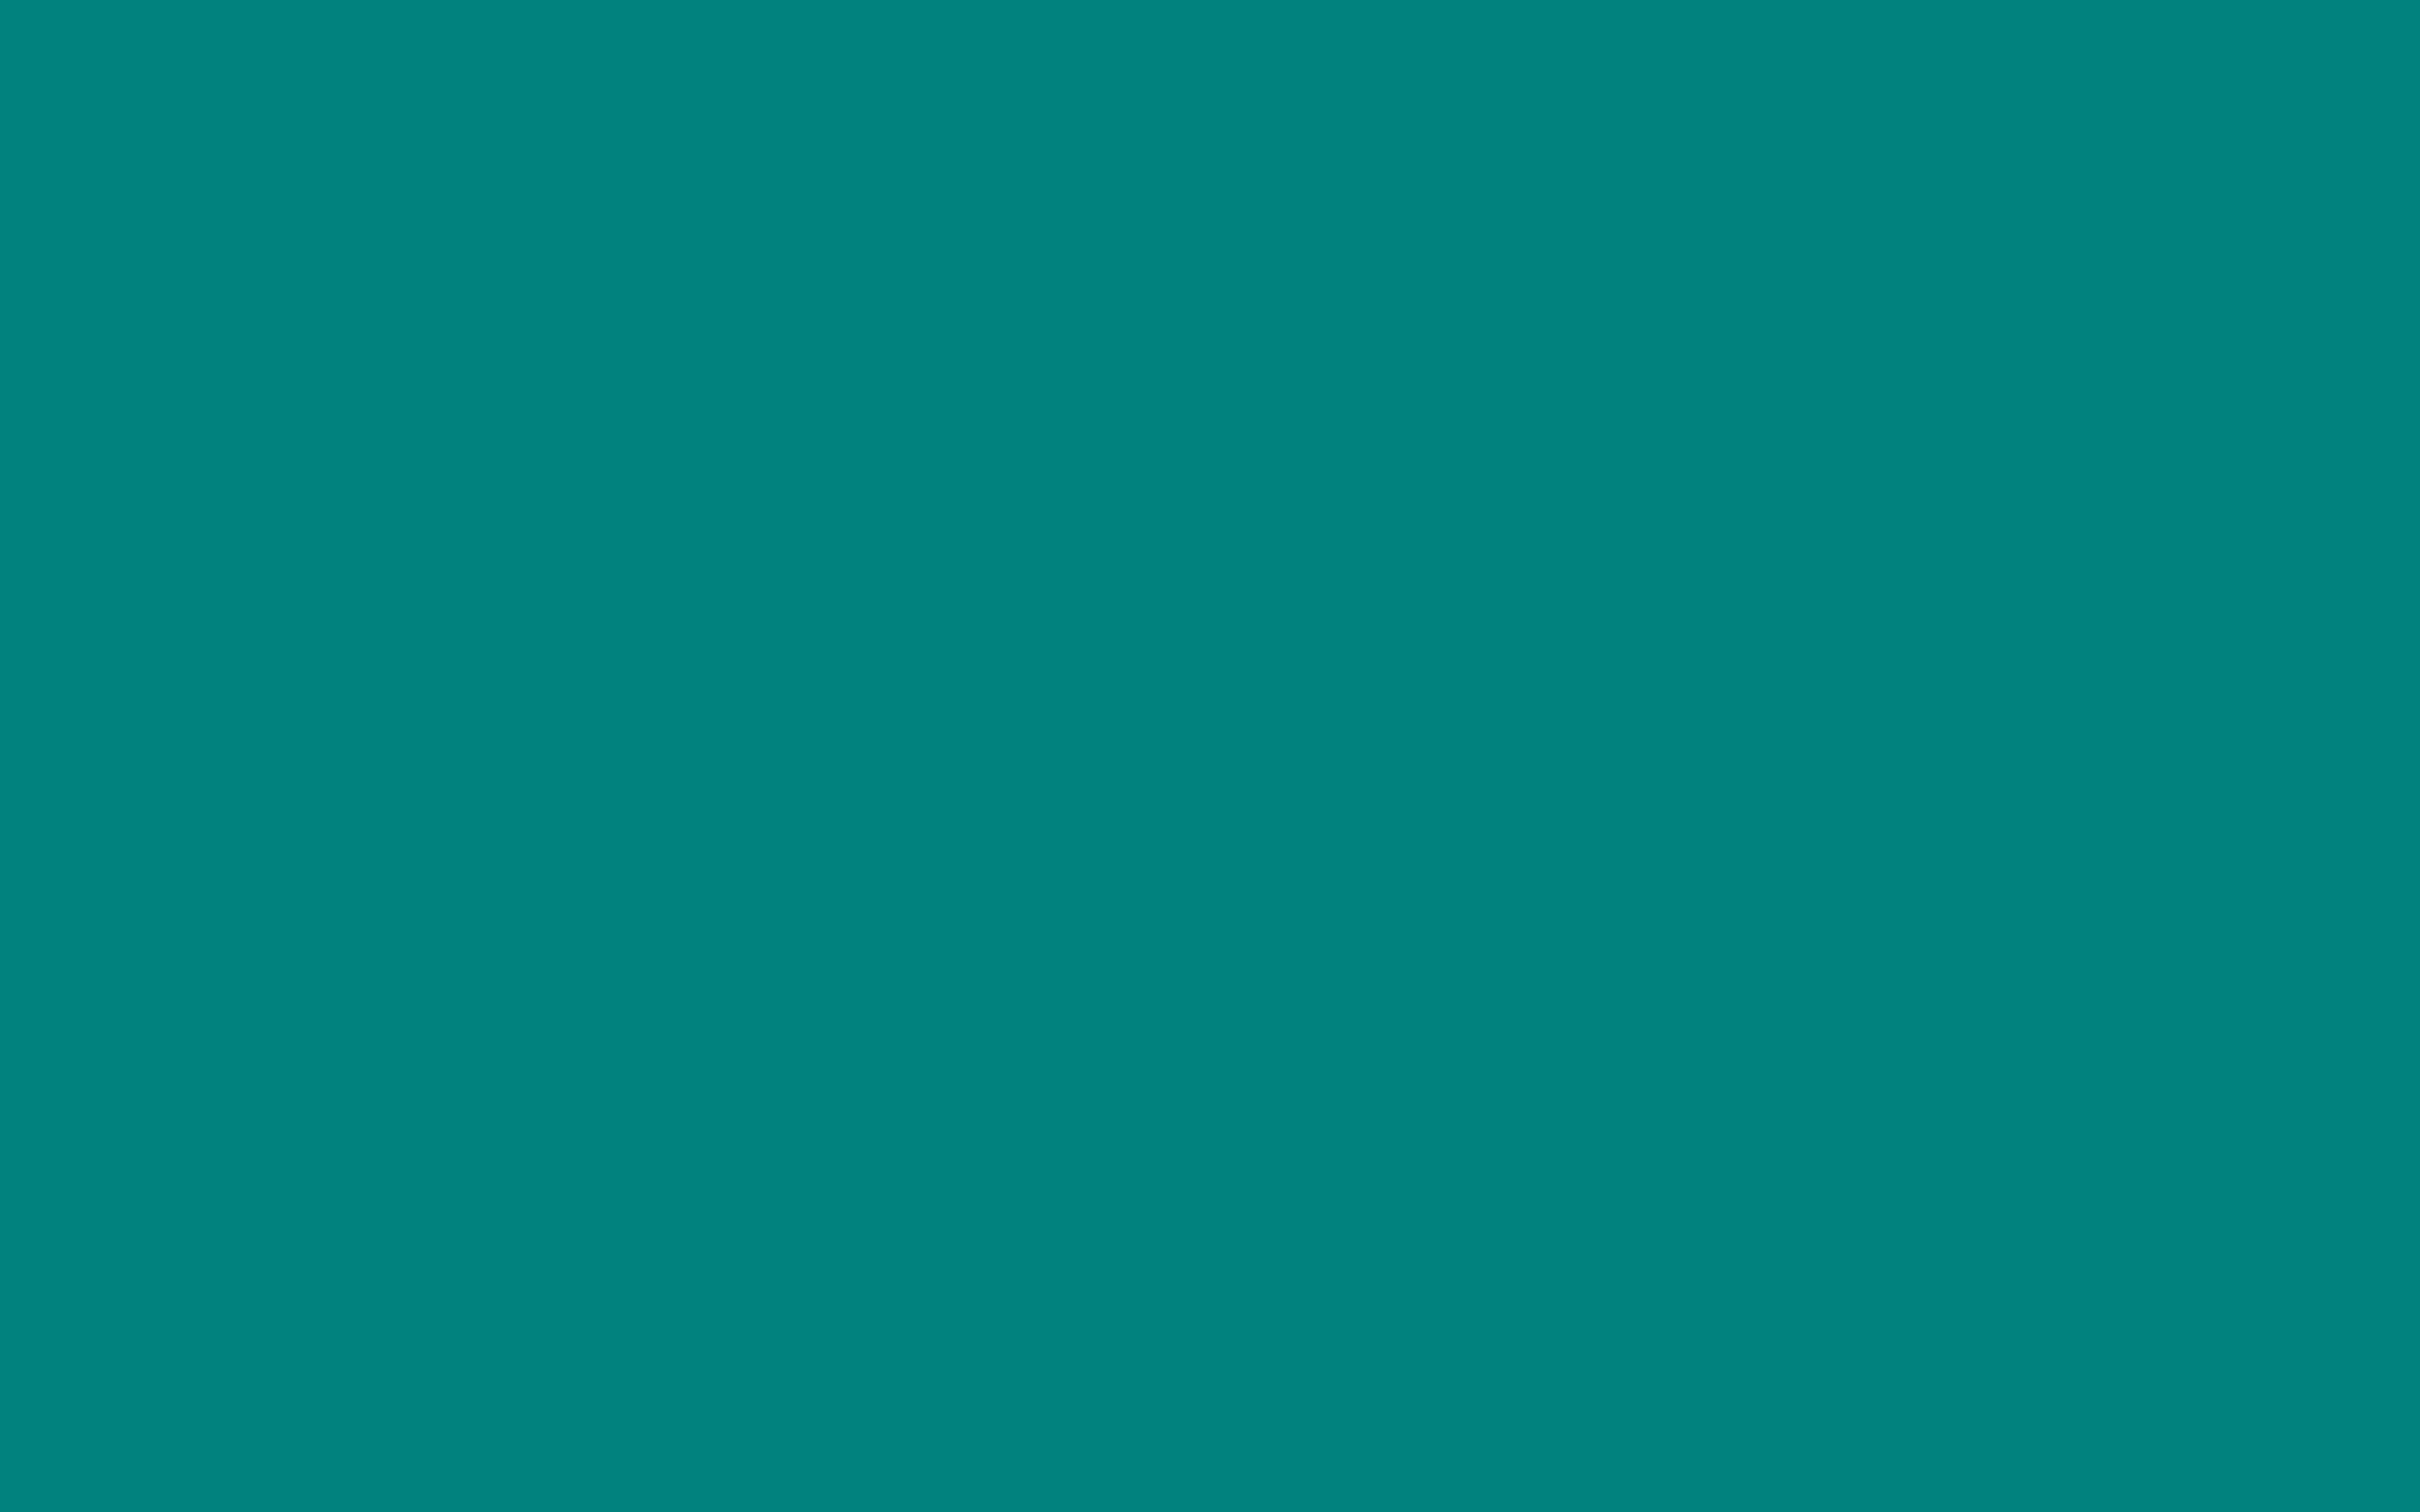 Teal Green Wallpaper   Wallpapers High Definition 2880x1800